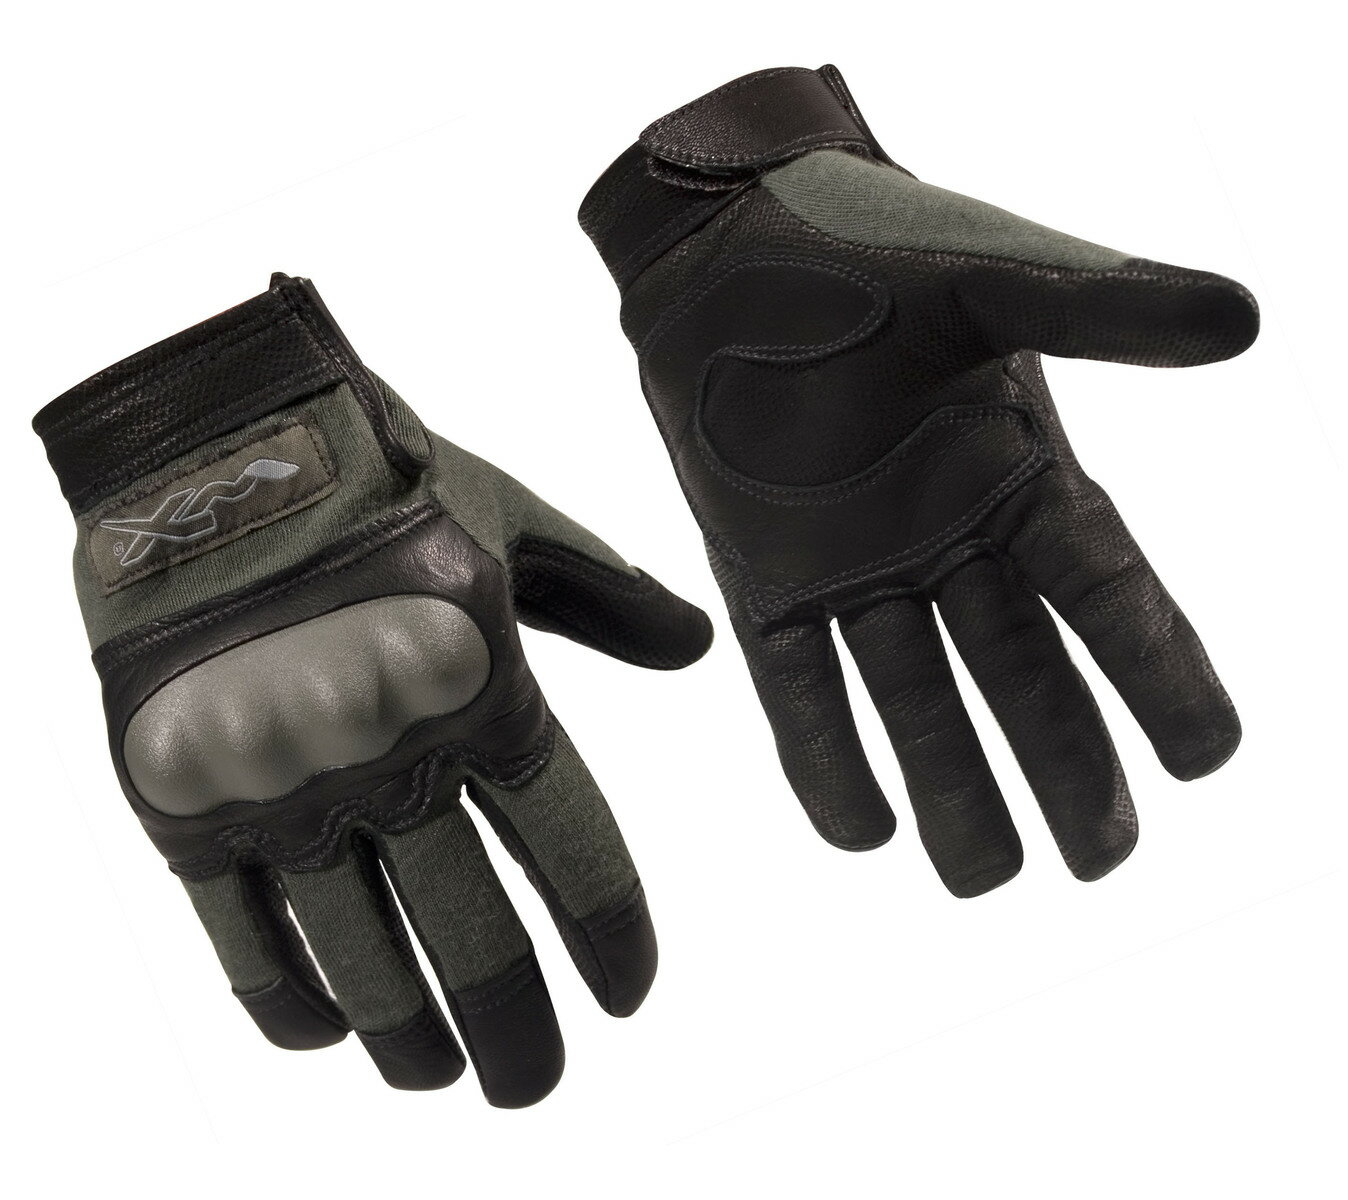 WILEY X ??? ???????? TACTICAL GLOVE ????